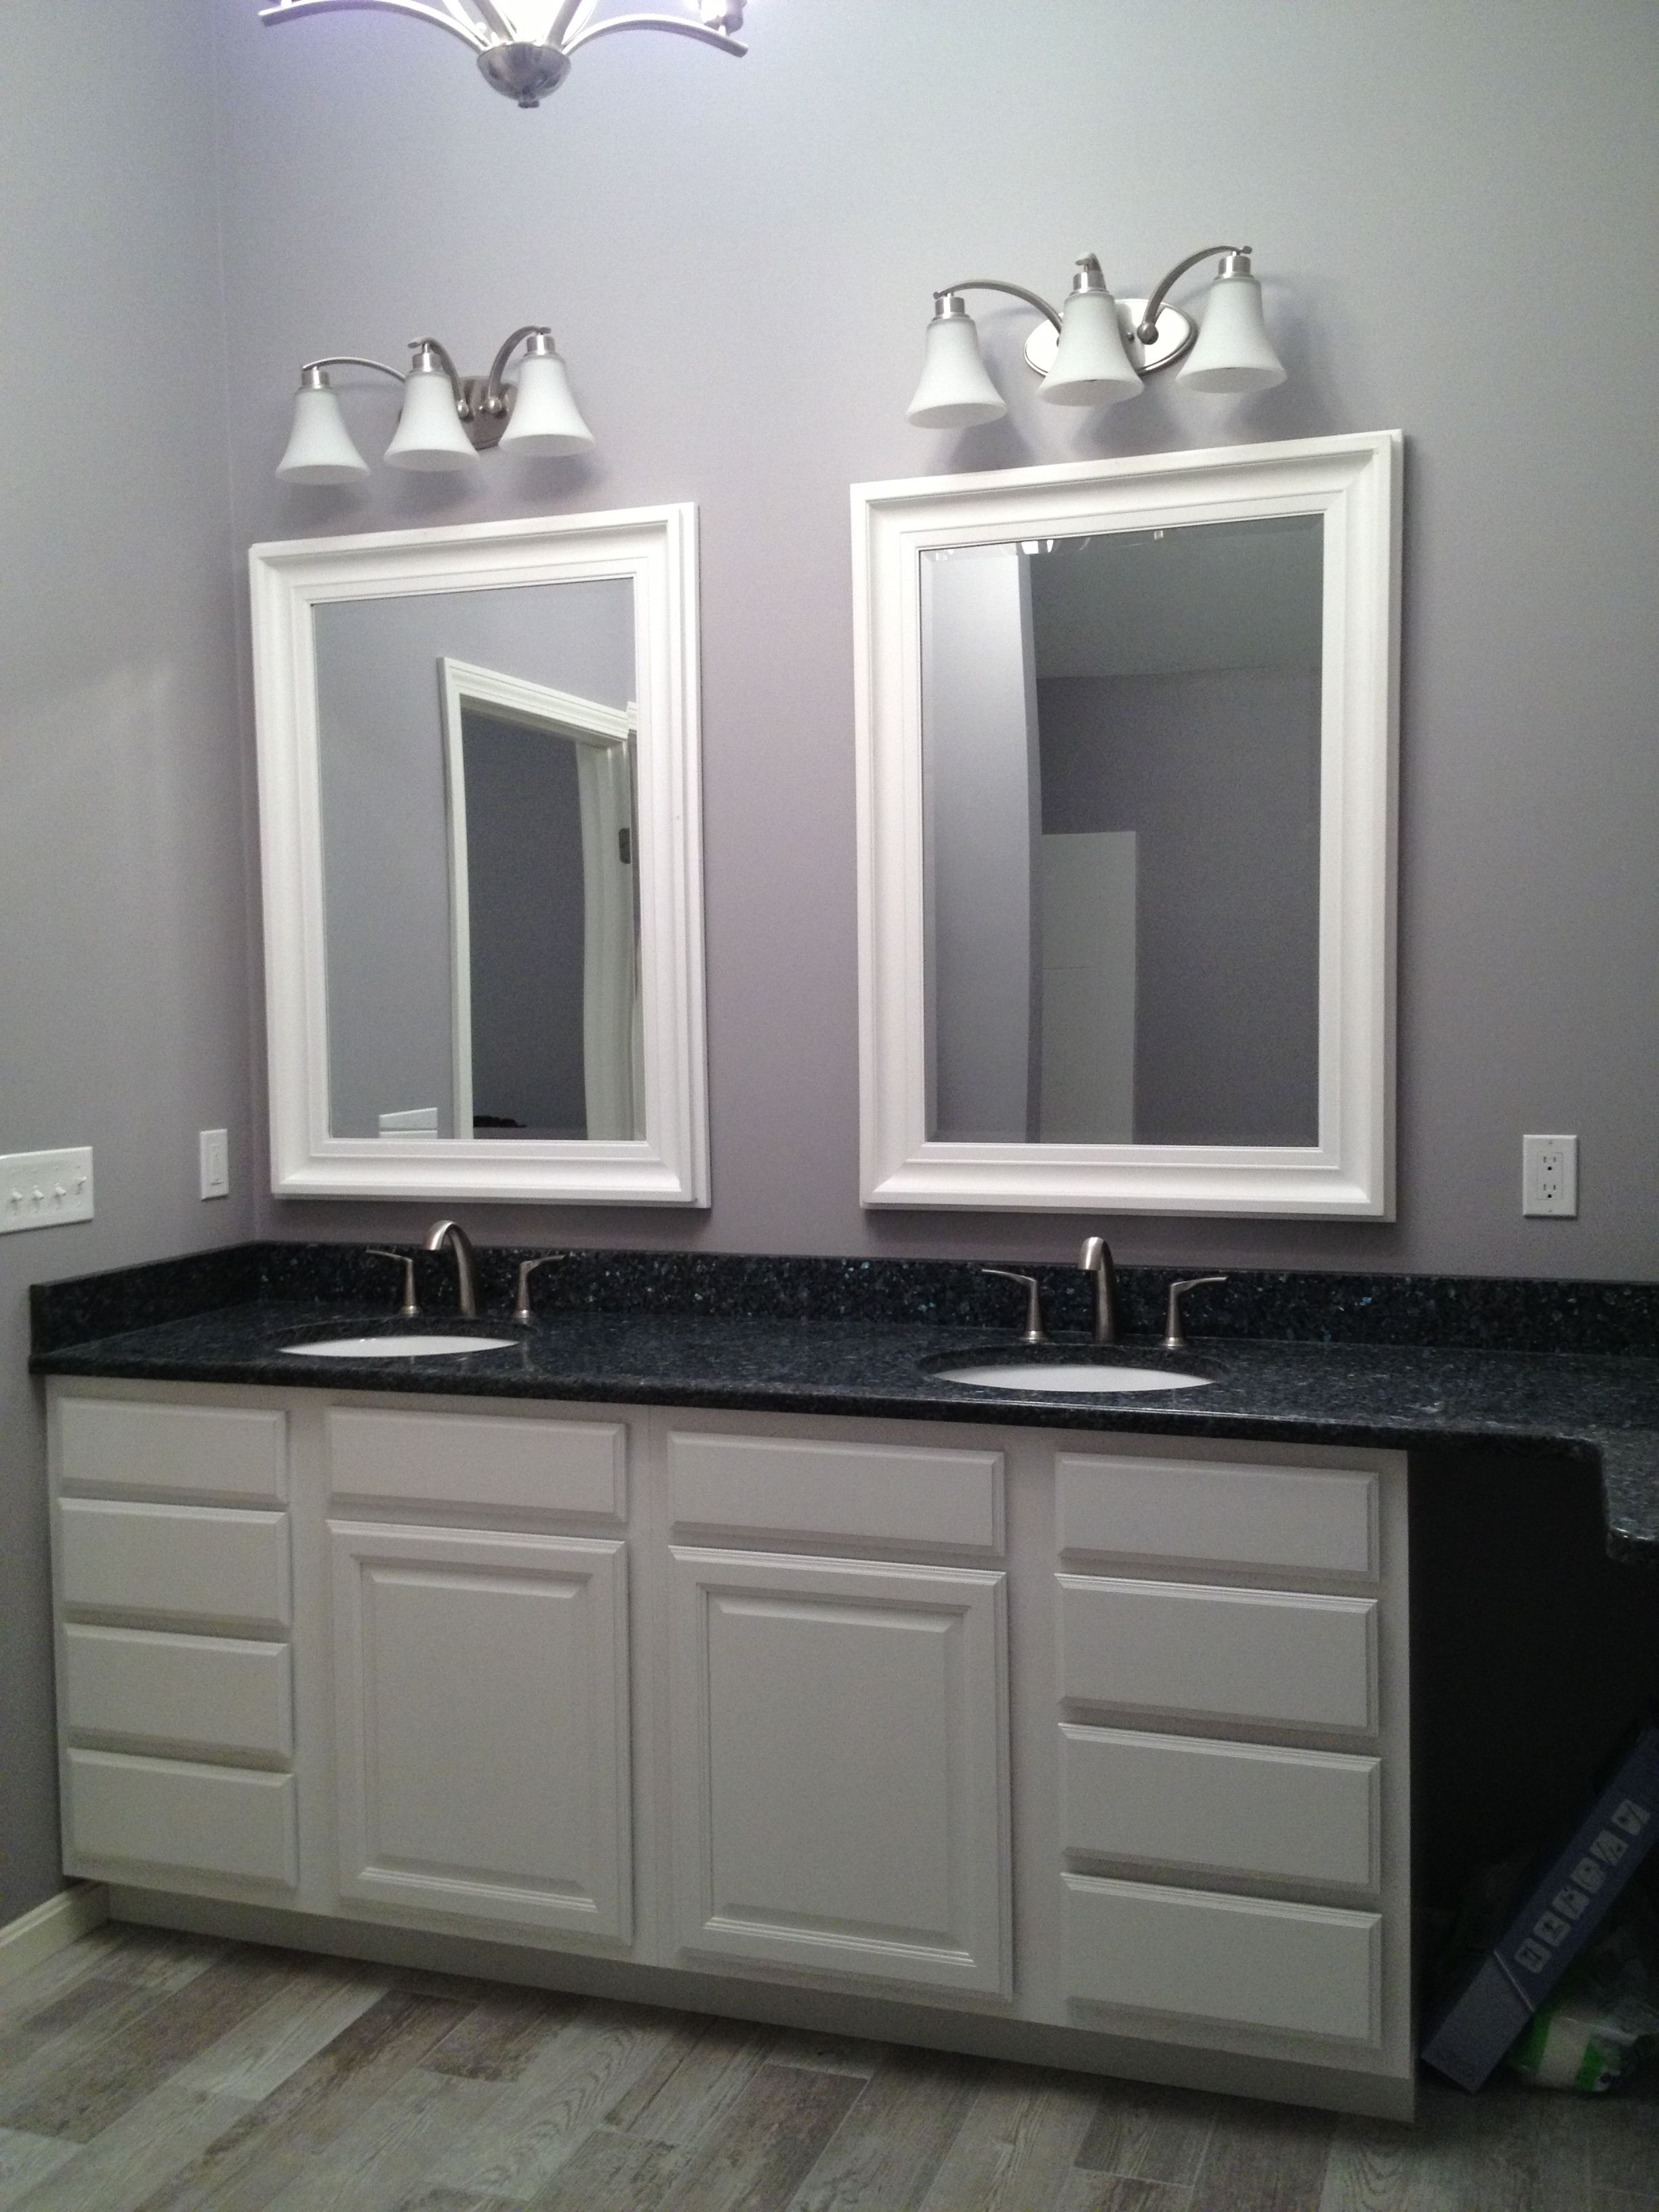 Master Bathroom Large 44 5 X 32 5 White Mirror Blue Pearl Granite Double Under Mount Sinks